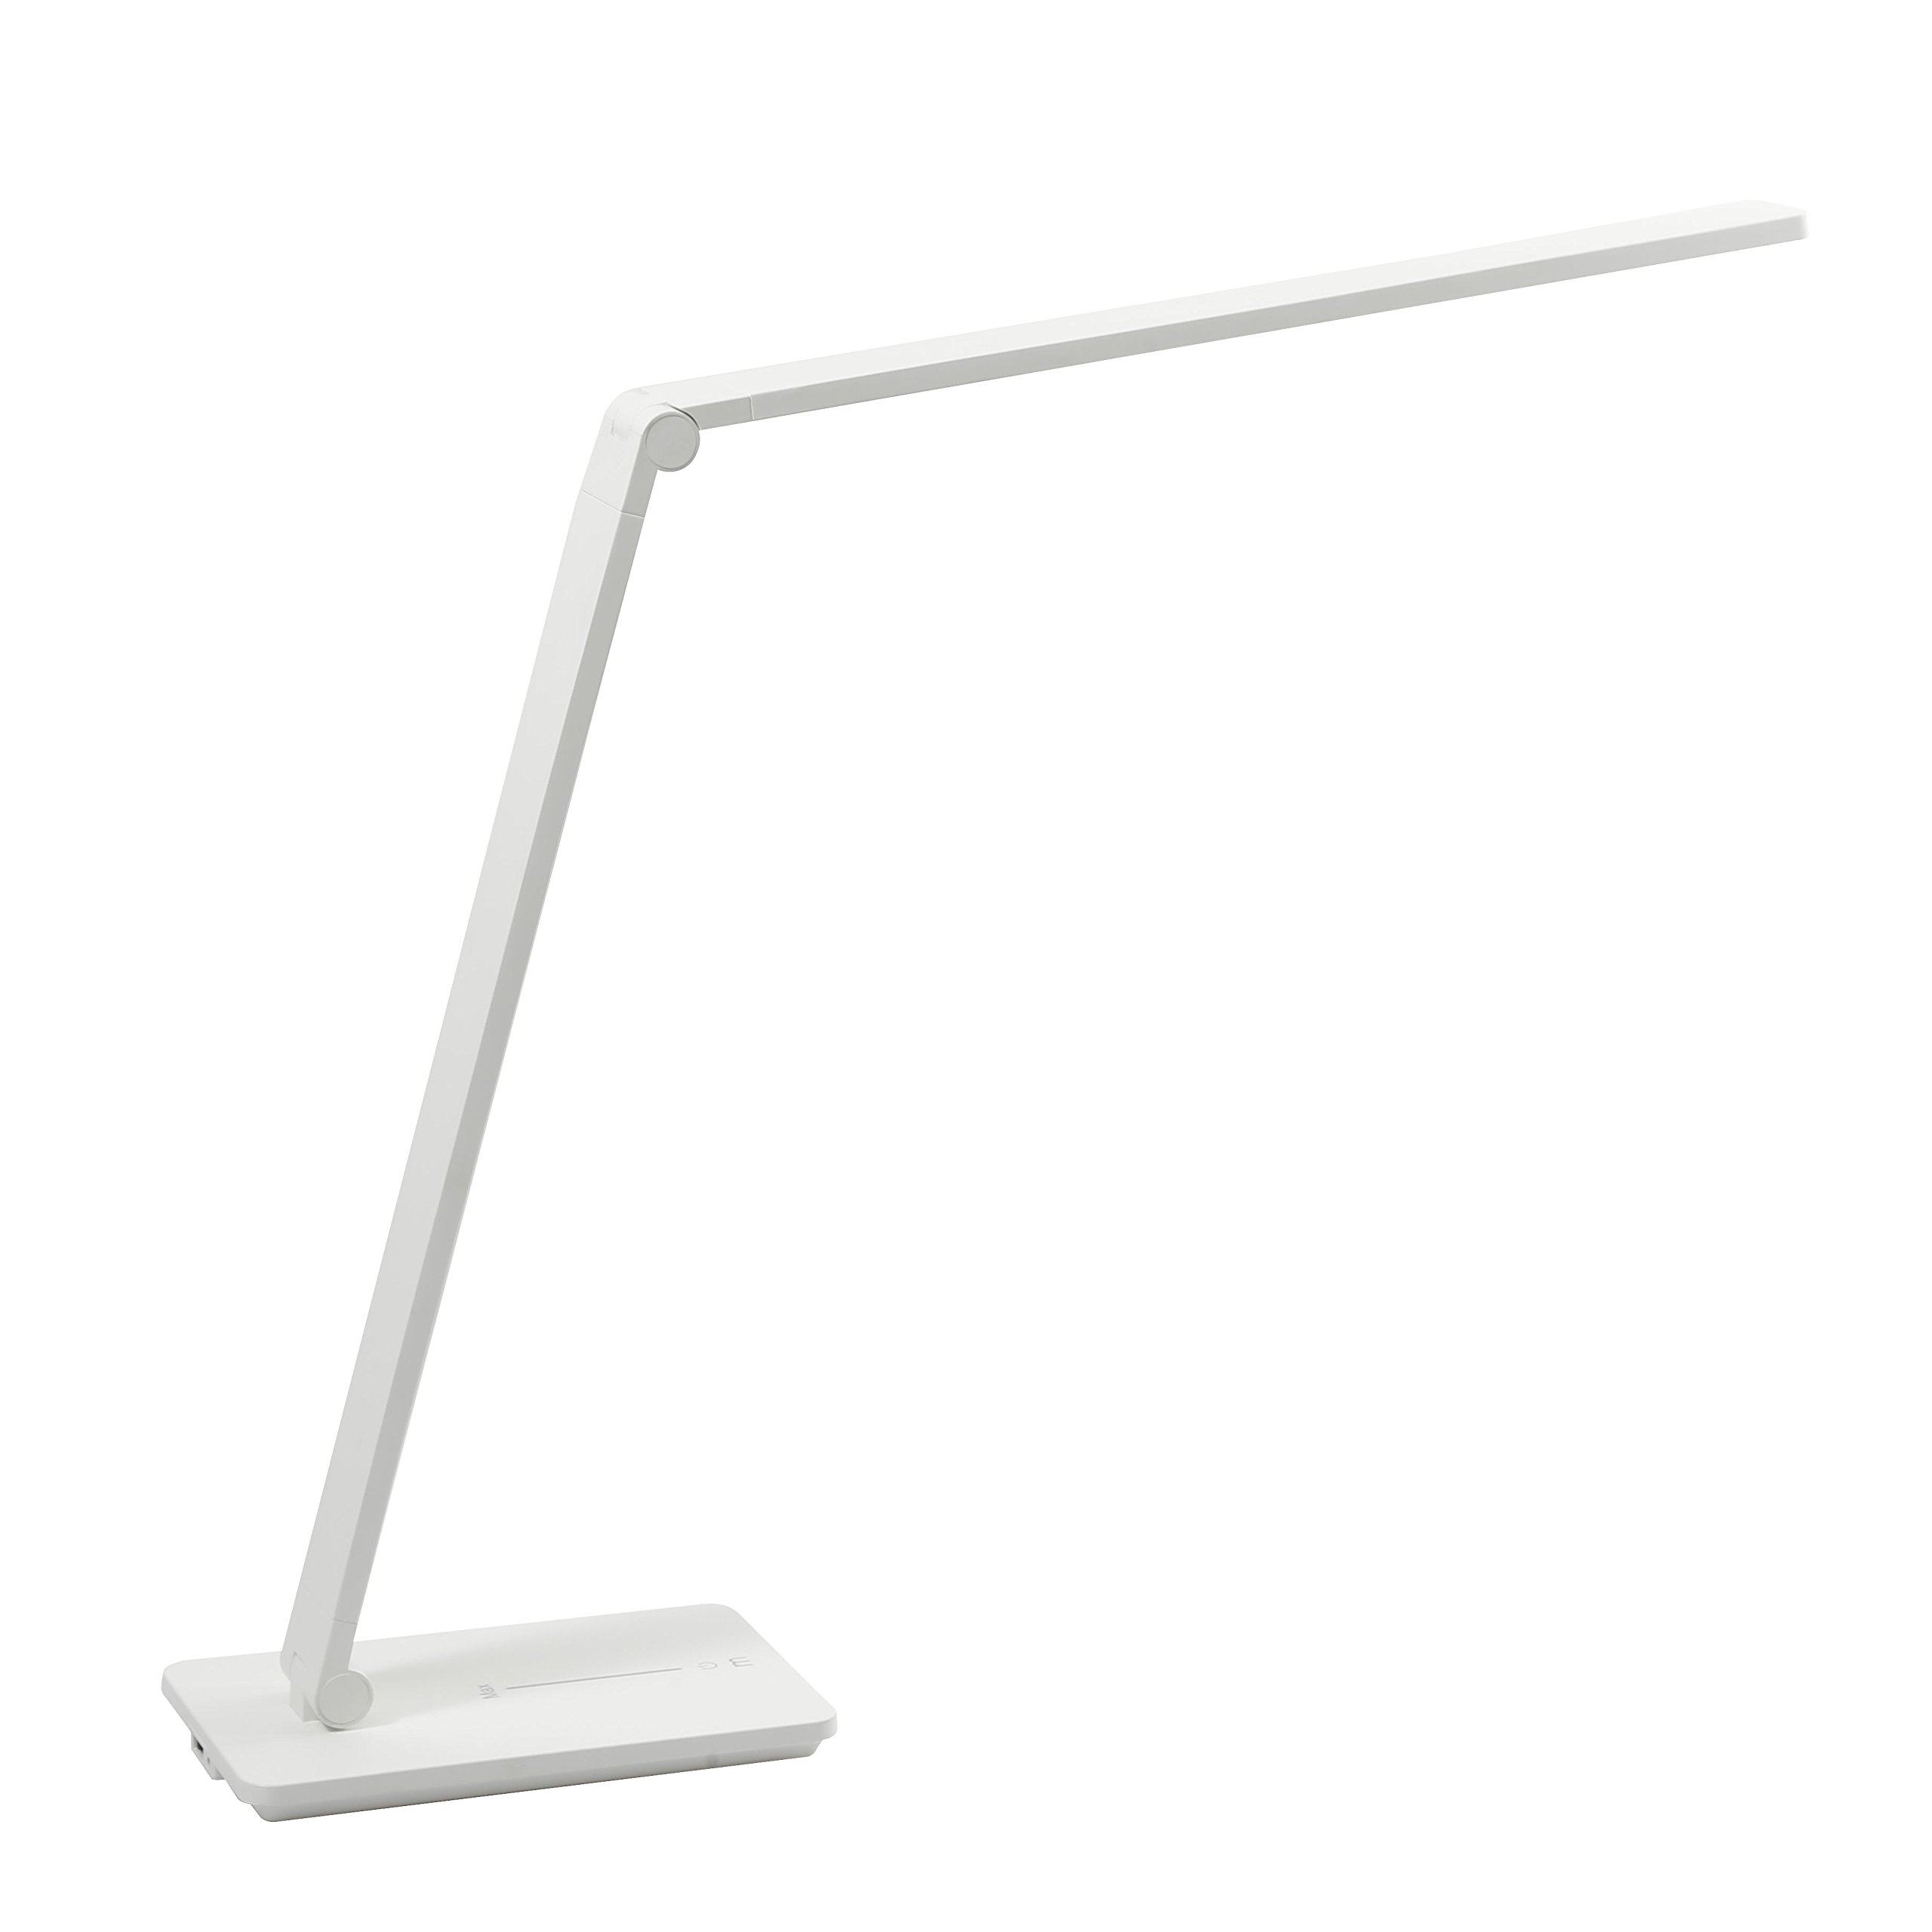 IESSENCE 9W Ultra-Slim LED Desk Lamp With USB Charging Port 5V,2.4A,Dimmable Table Lamp, Study Lamp/Workbench lamp,3 Color Modes/Limitless Levels Brightness And With Memory Function.